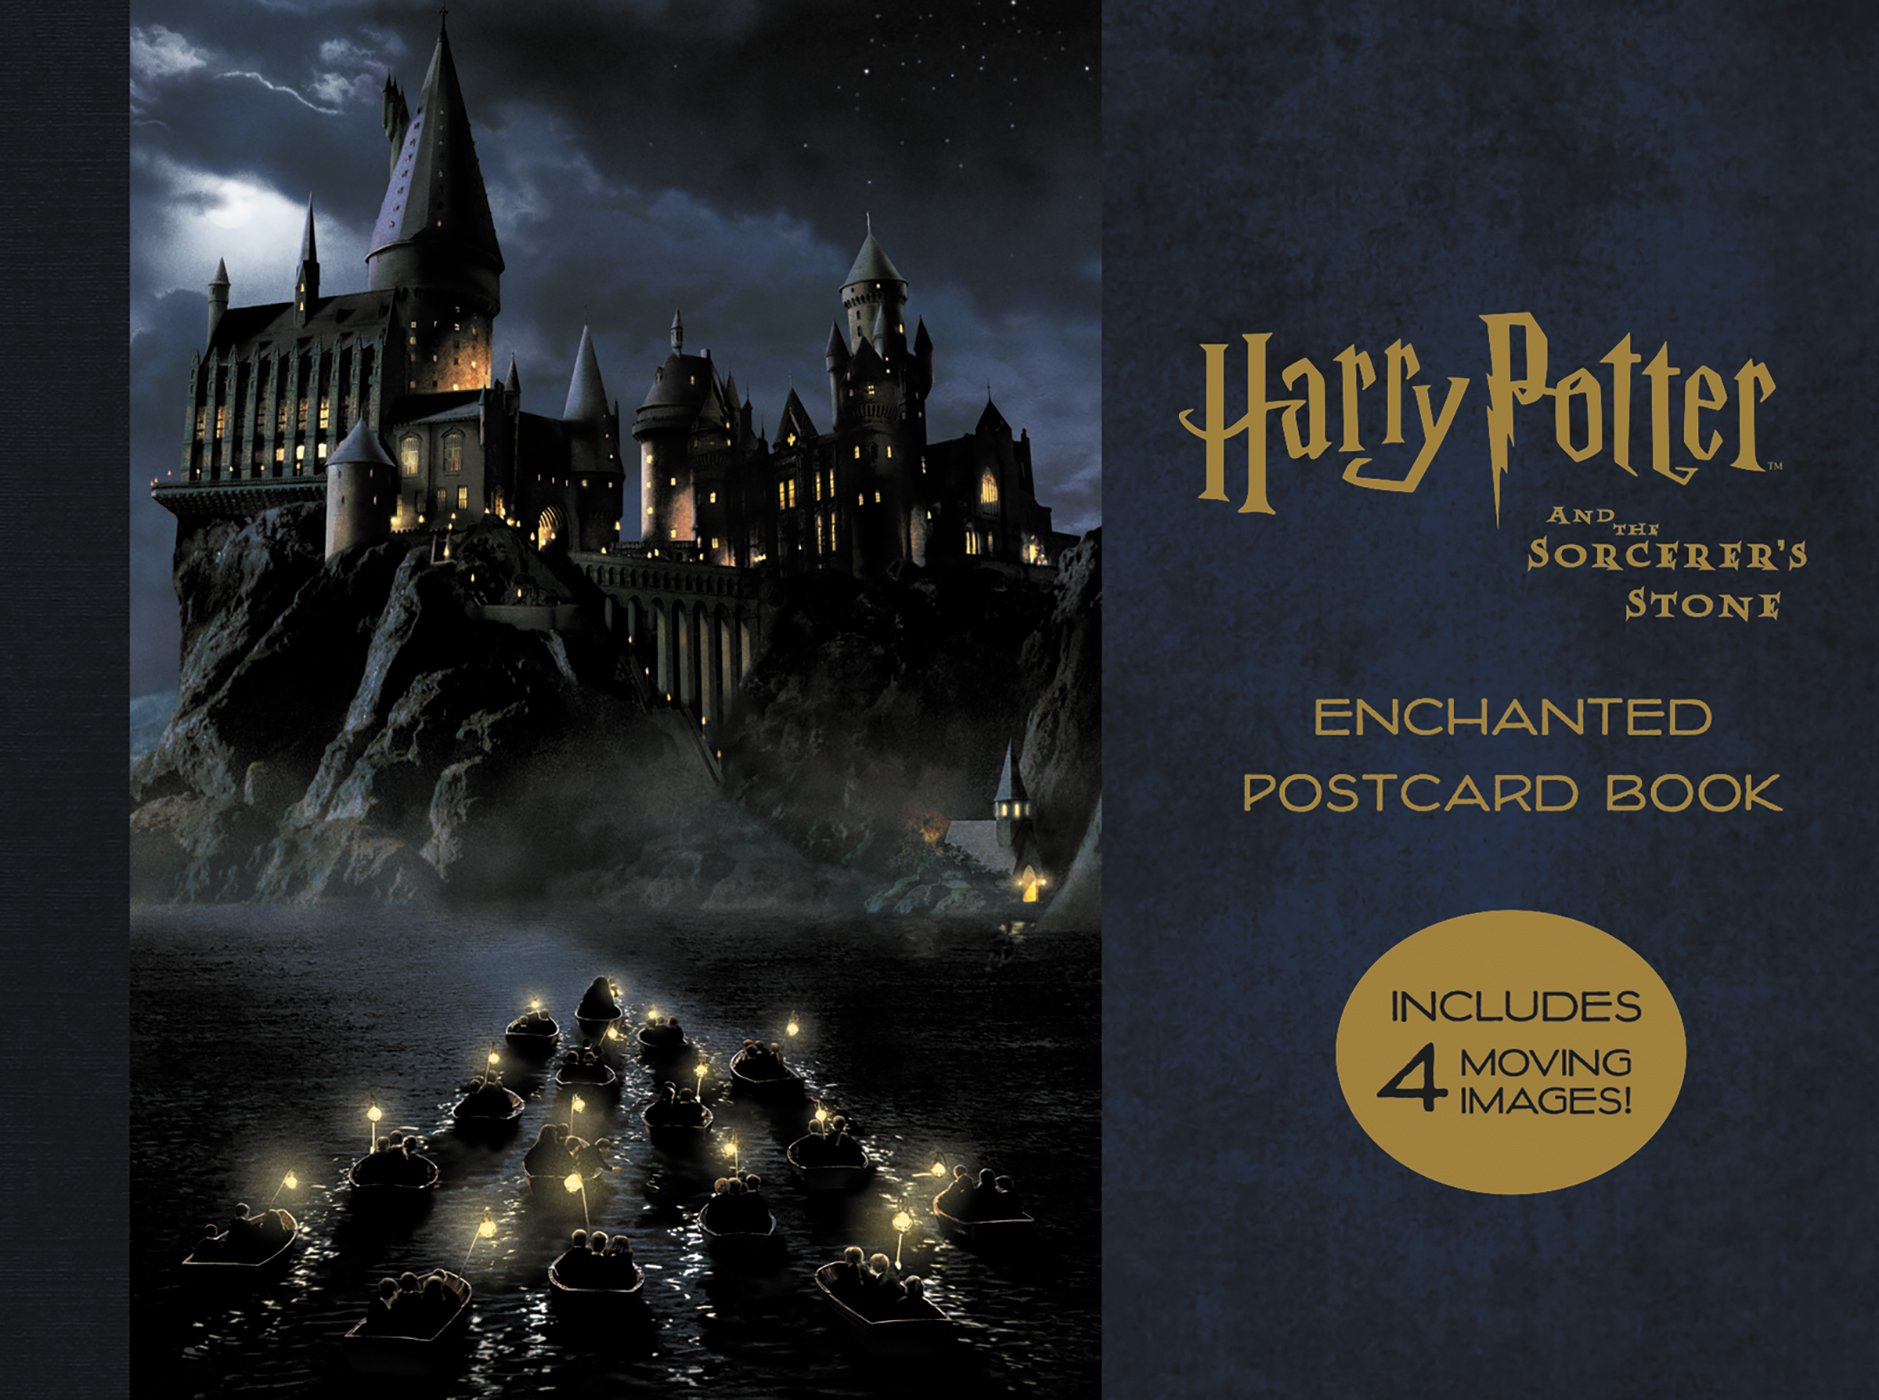 Harry Potter and the Sorcerer's Stone: Enchanted Postcard Book